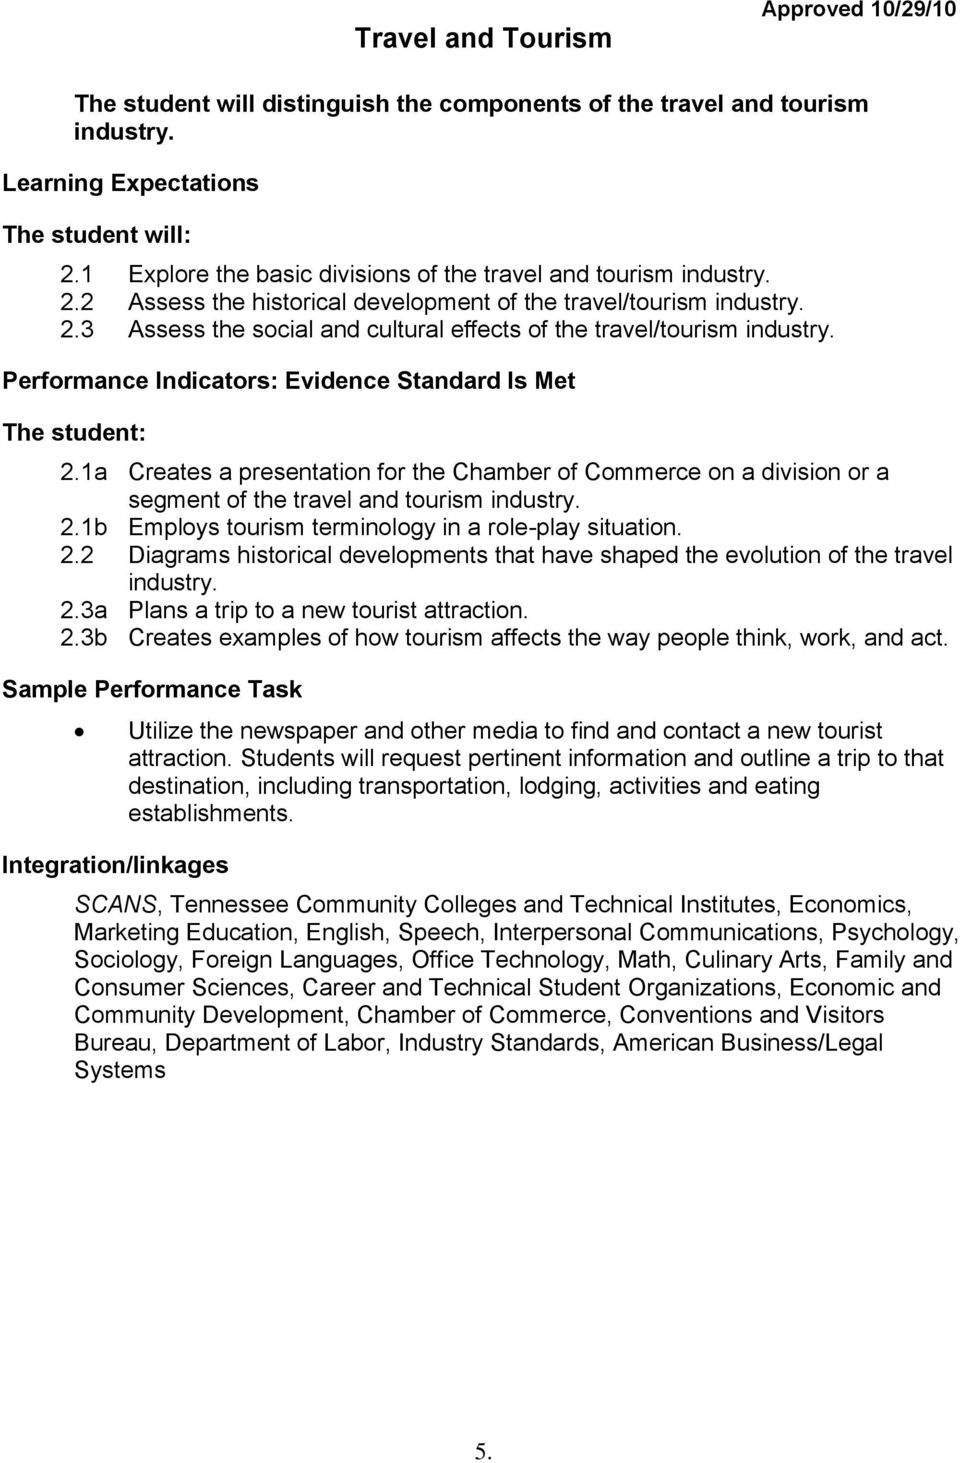 Travel and Tourism  10 th, 11 th, 12 th  *Standards to be